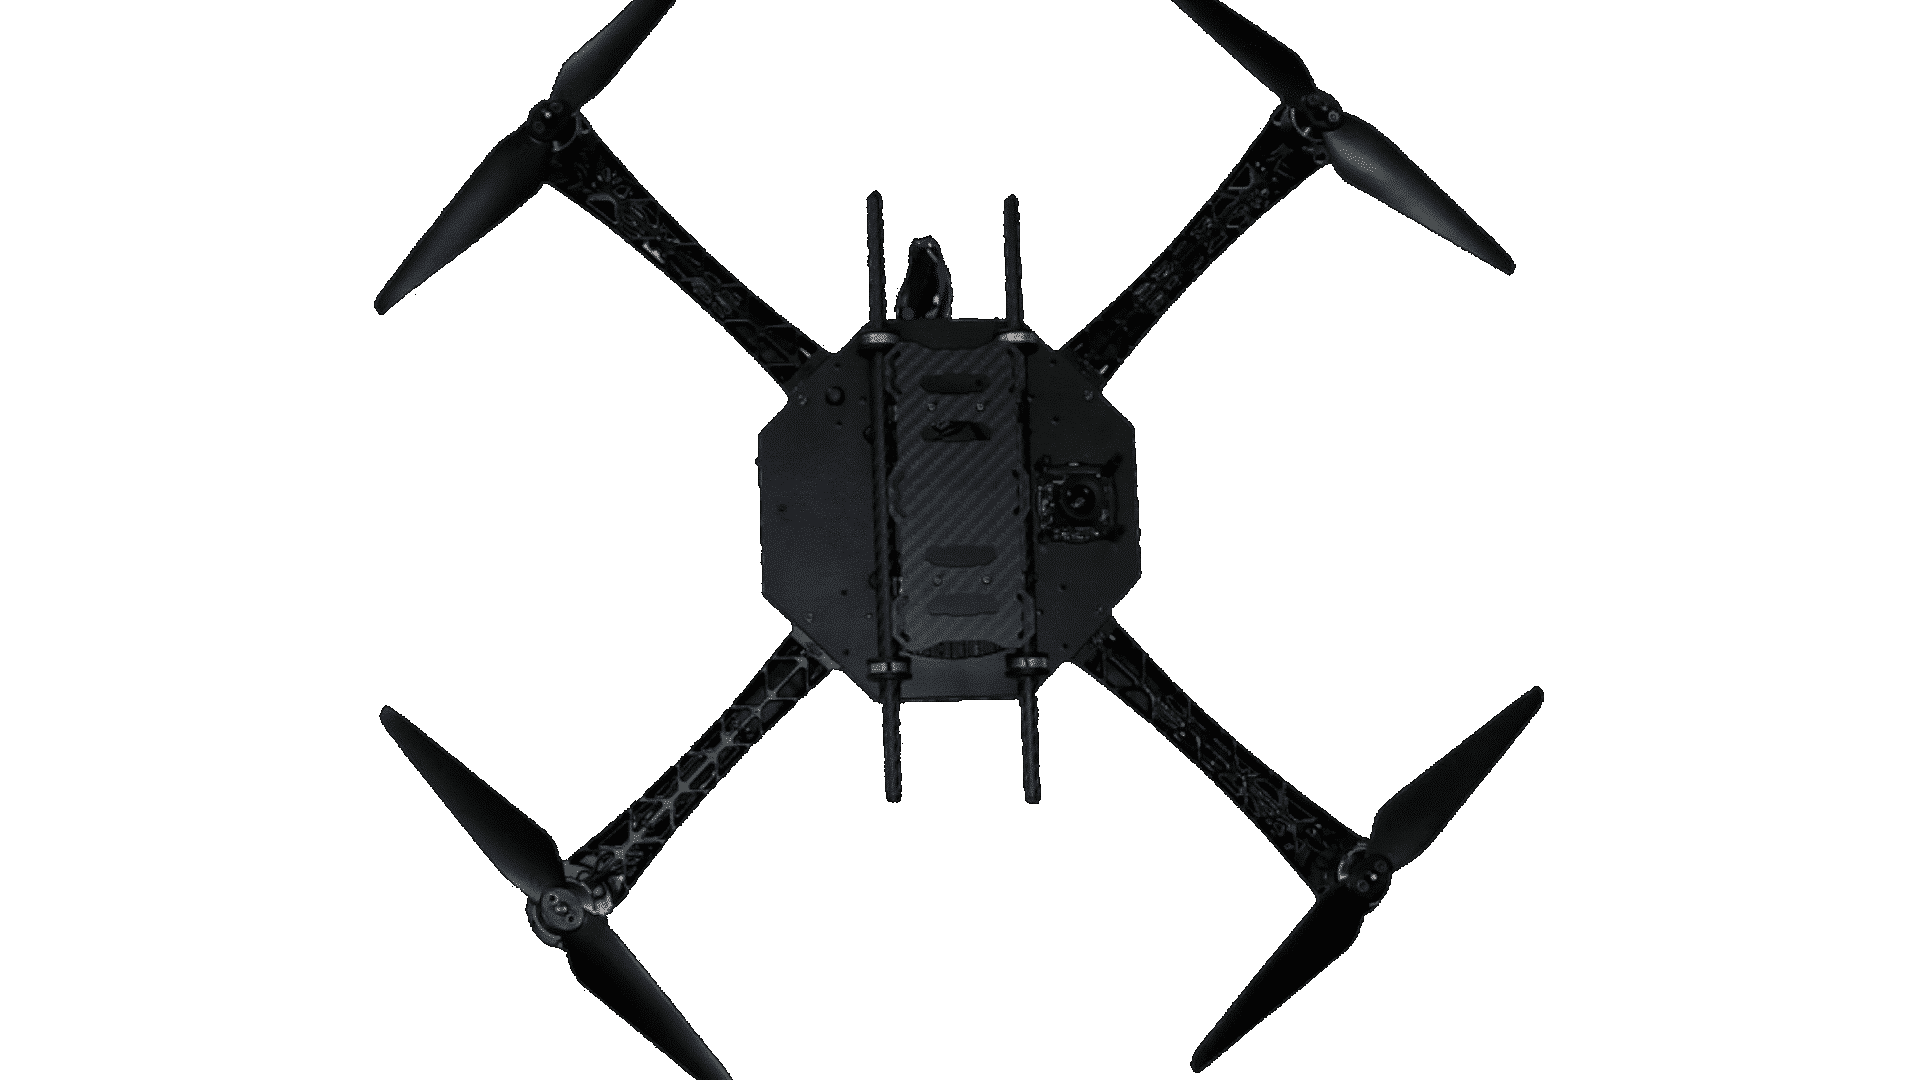 a drone from Rizse